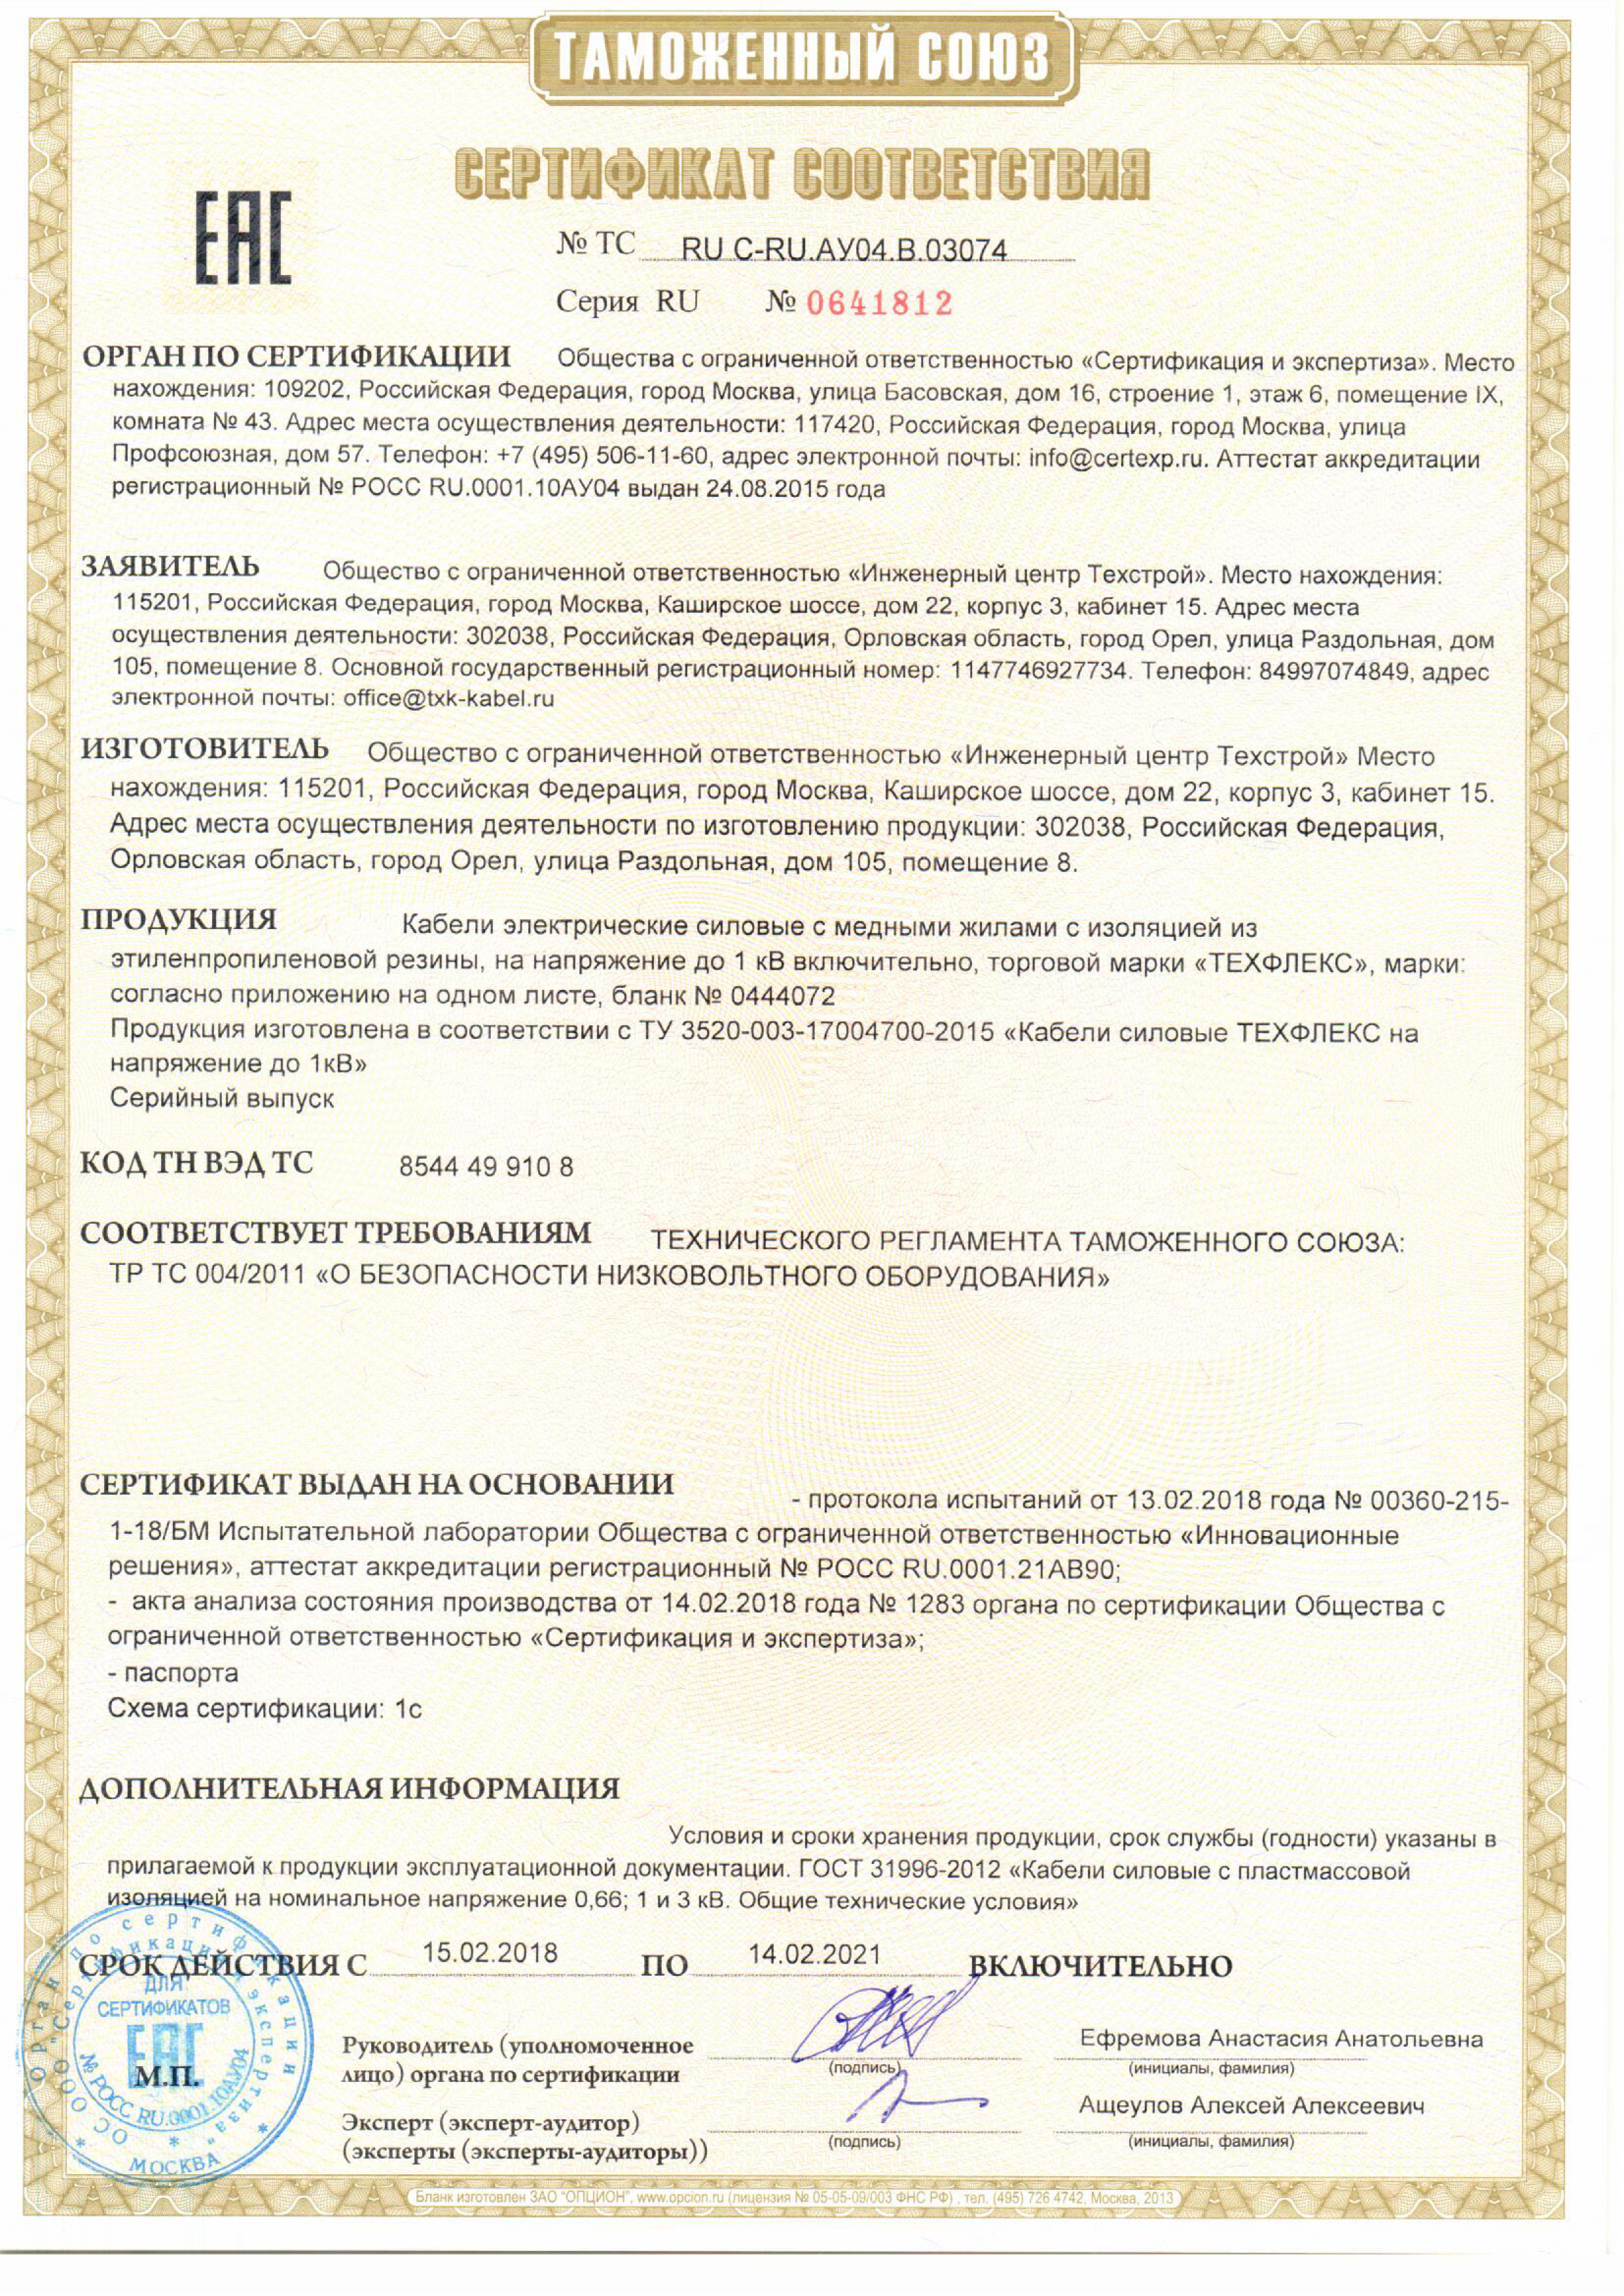 Certificate of Conformity to Technical Specifications for Power Cables of Voltage under 1 kV